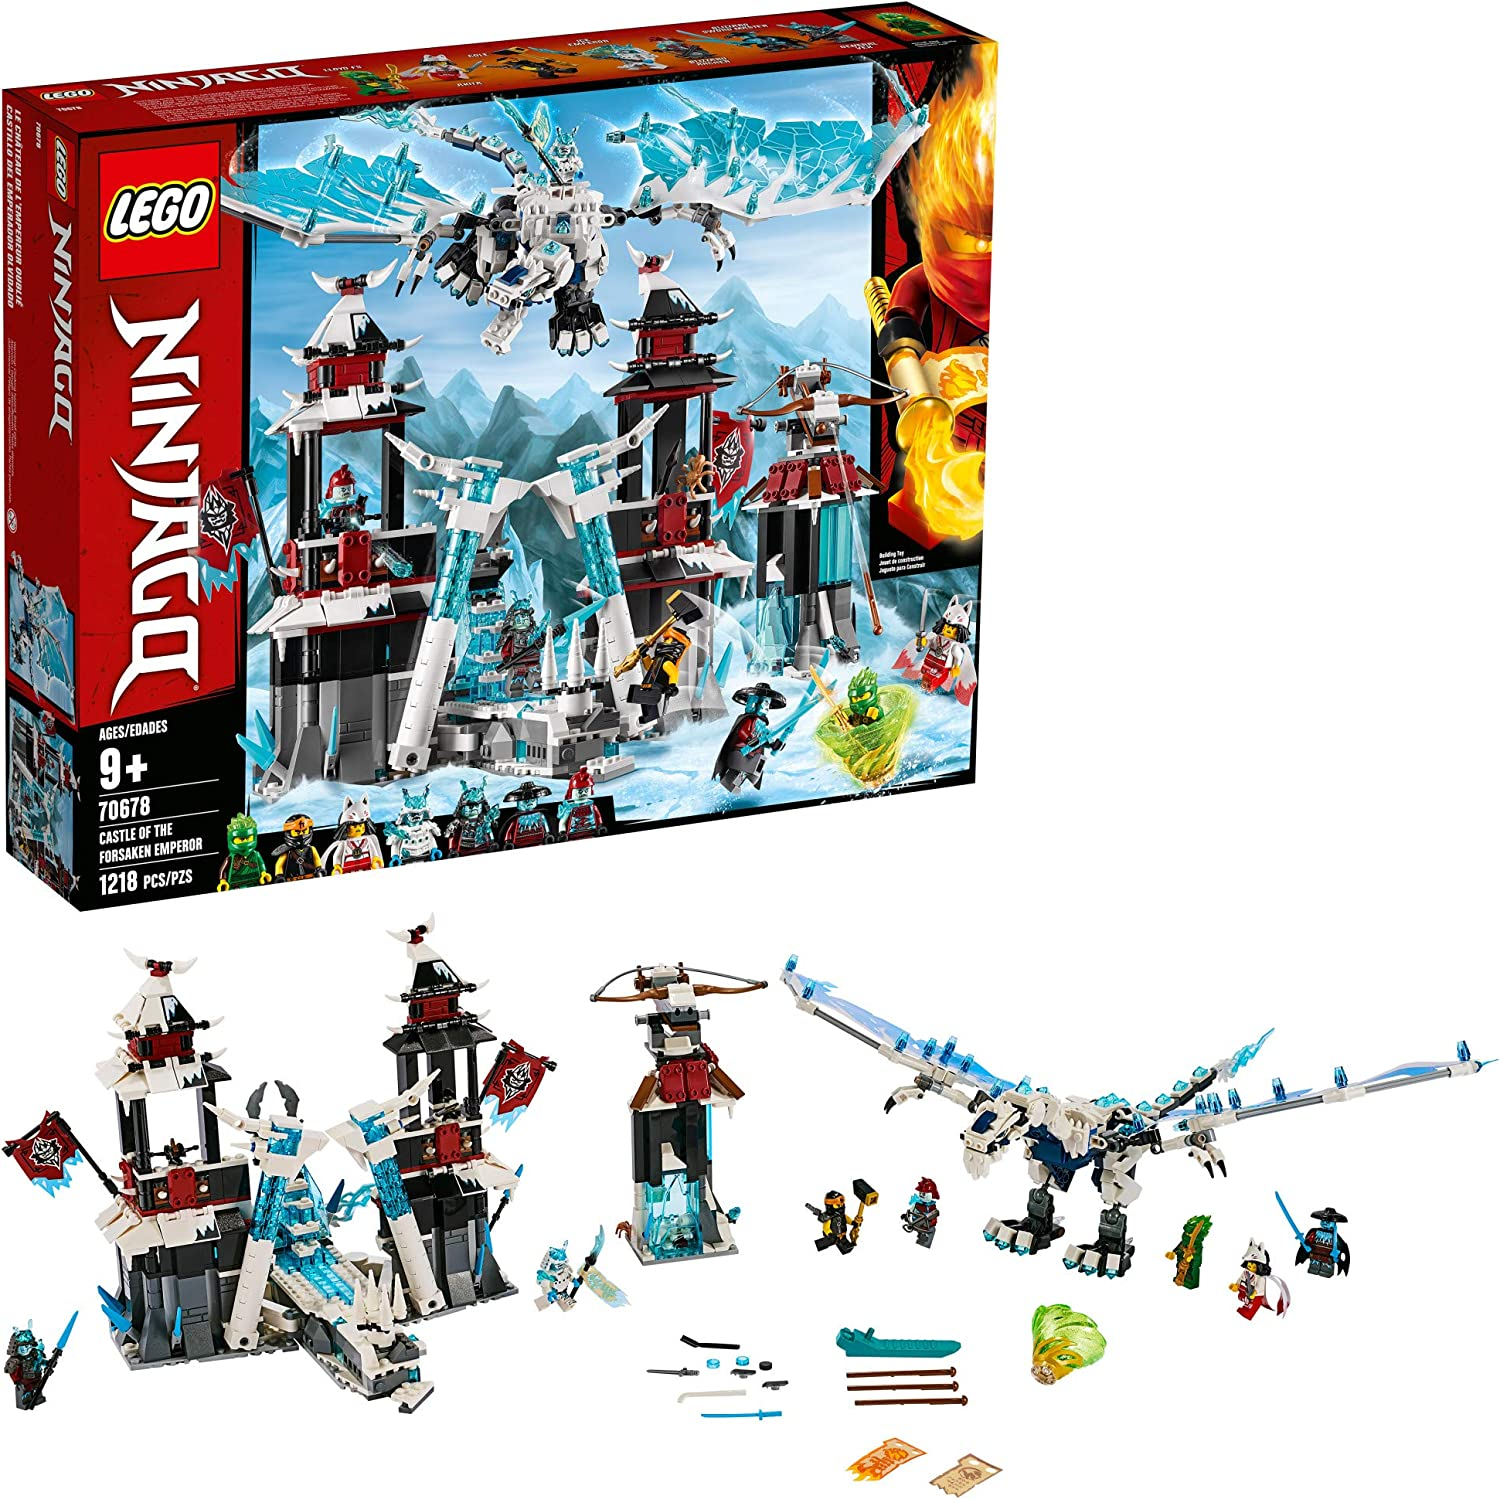 LEGO NINJAGO Castle of the Forsaken Emperor 70678 Building Kit, New 2019 (1,218 Pieces)